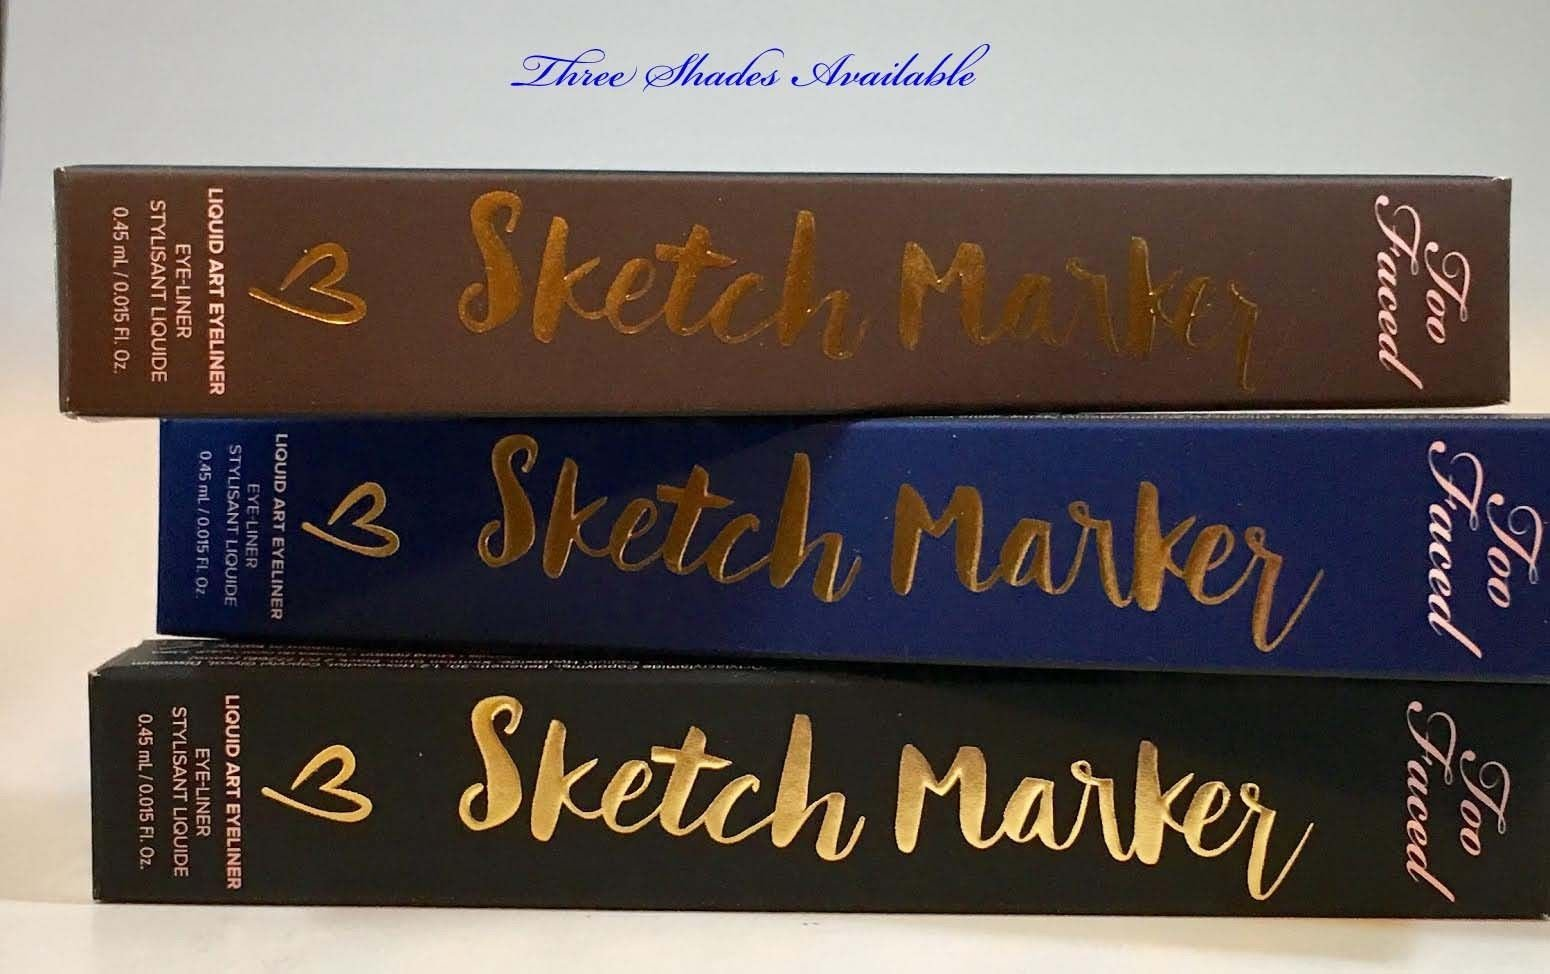 Too Faced Sketch Marker Liquid Art Waterproof Eyeliner 0.015 oz  (Several Shades) 14464